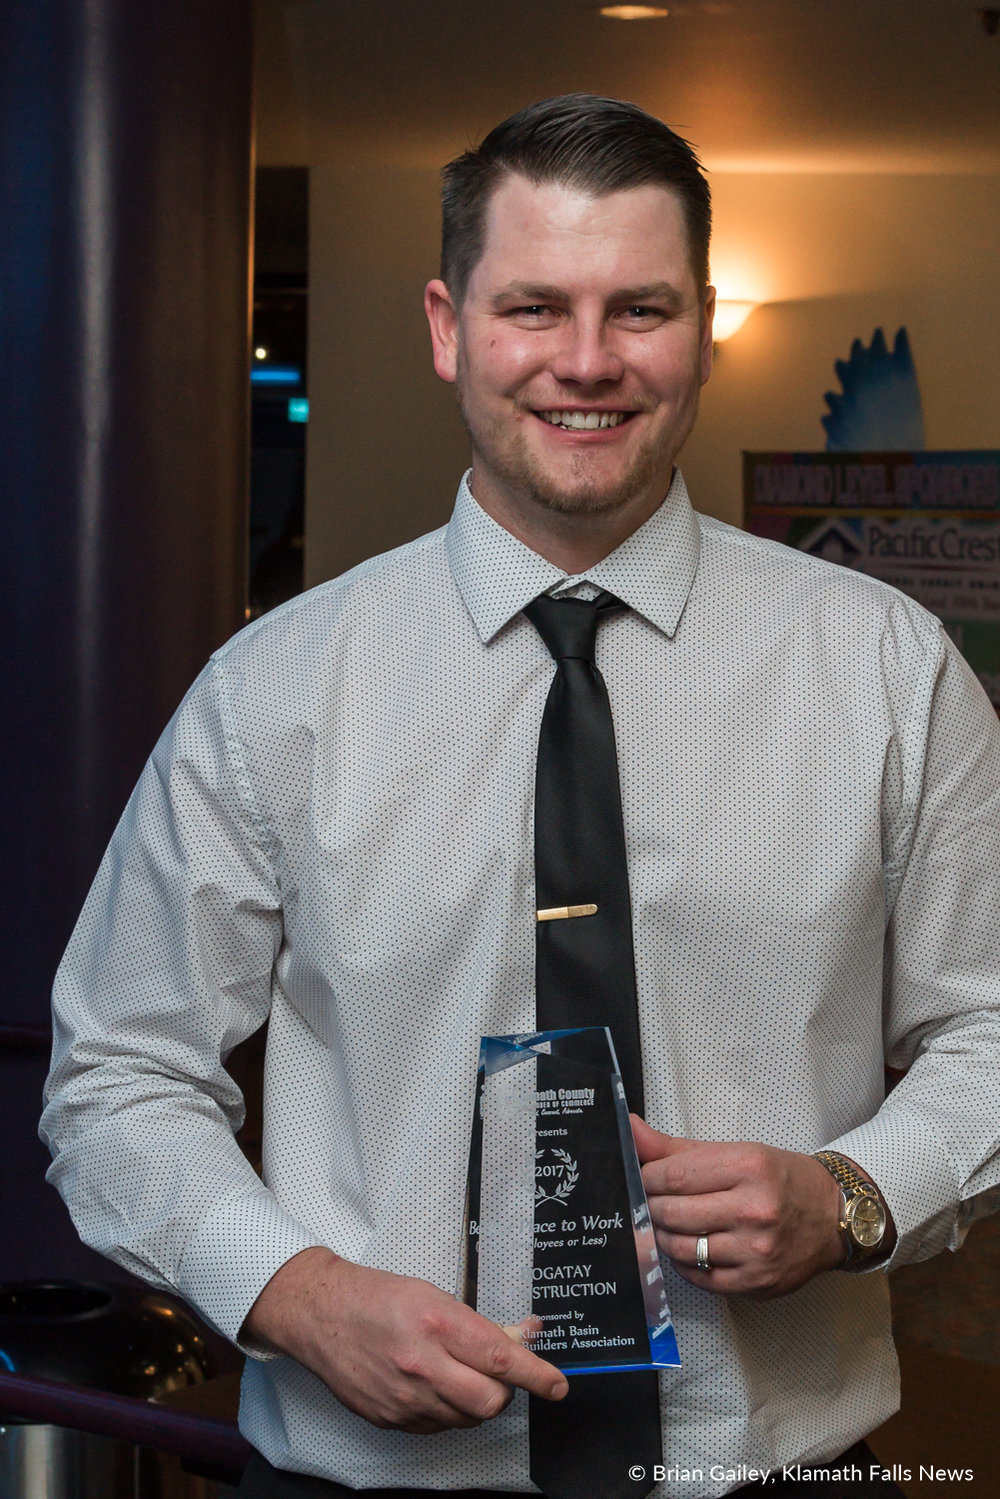 Matt Bogatay stands with his award following the 97th Annual Chamber Gala Awards. (Brian Gailey)